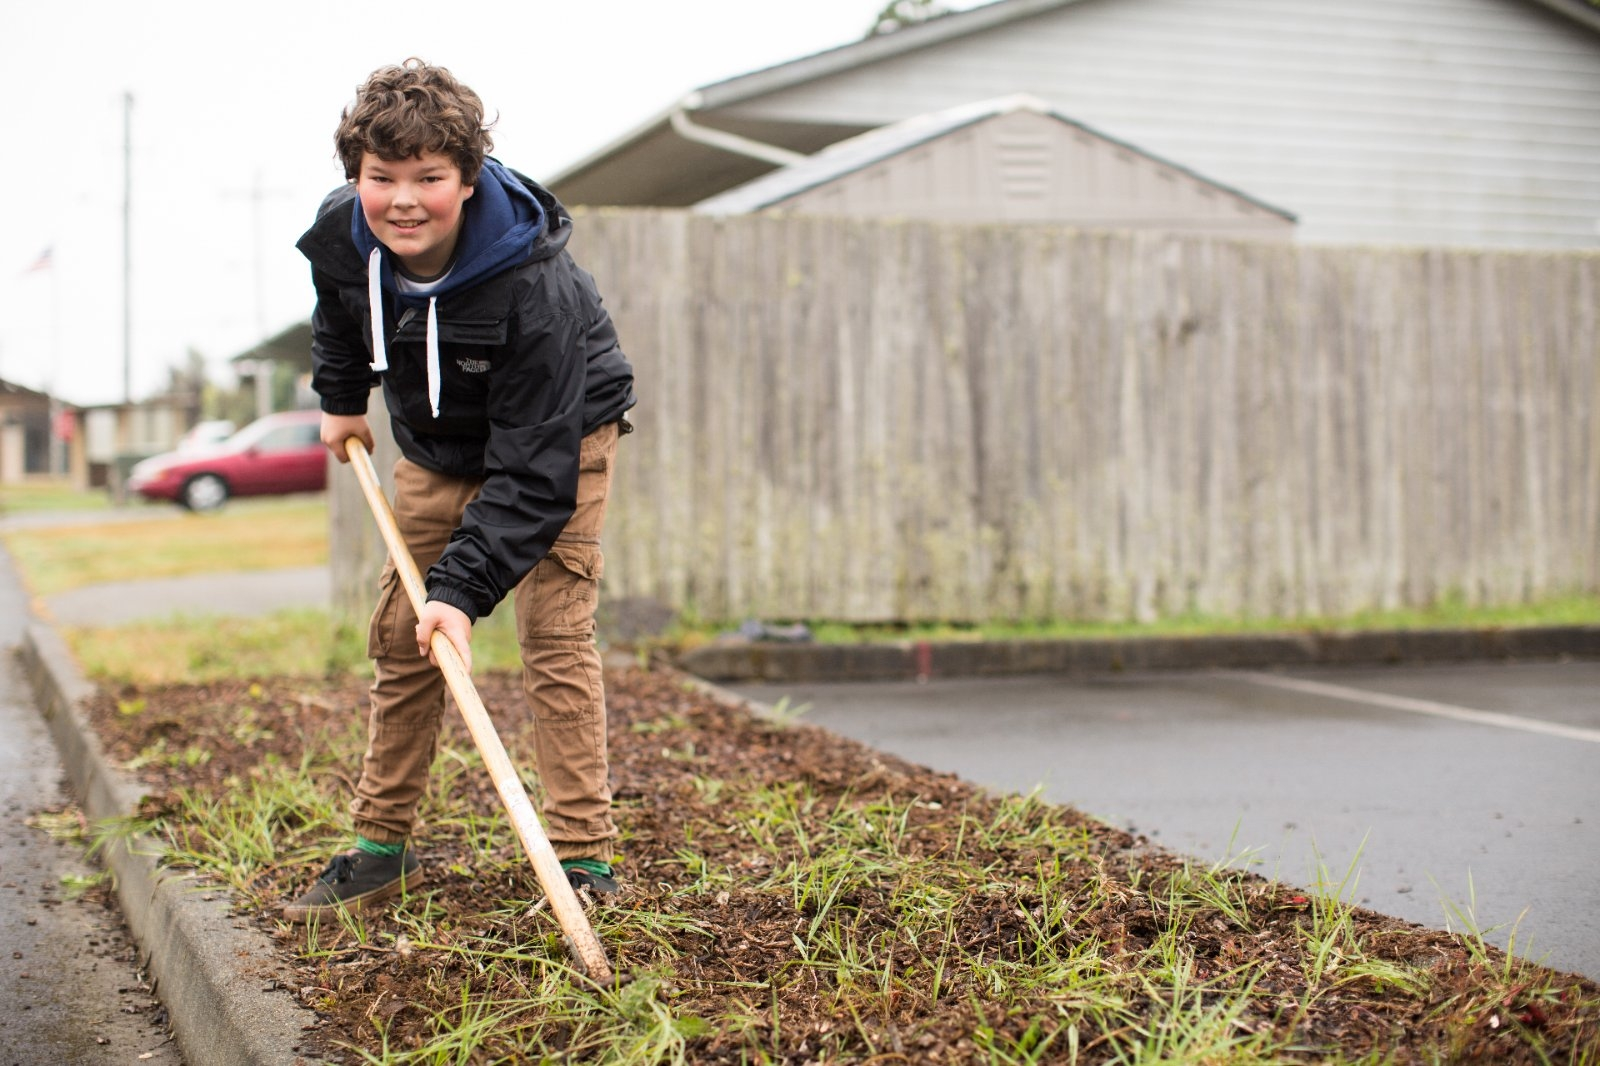 Young boy participates in a community landscaping project.